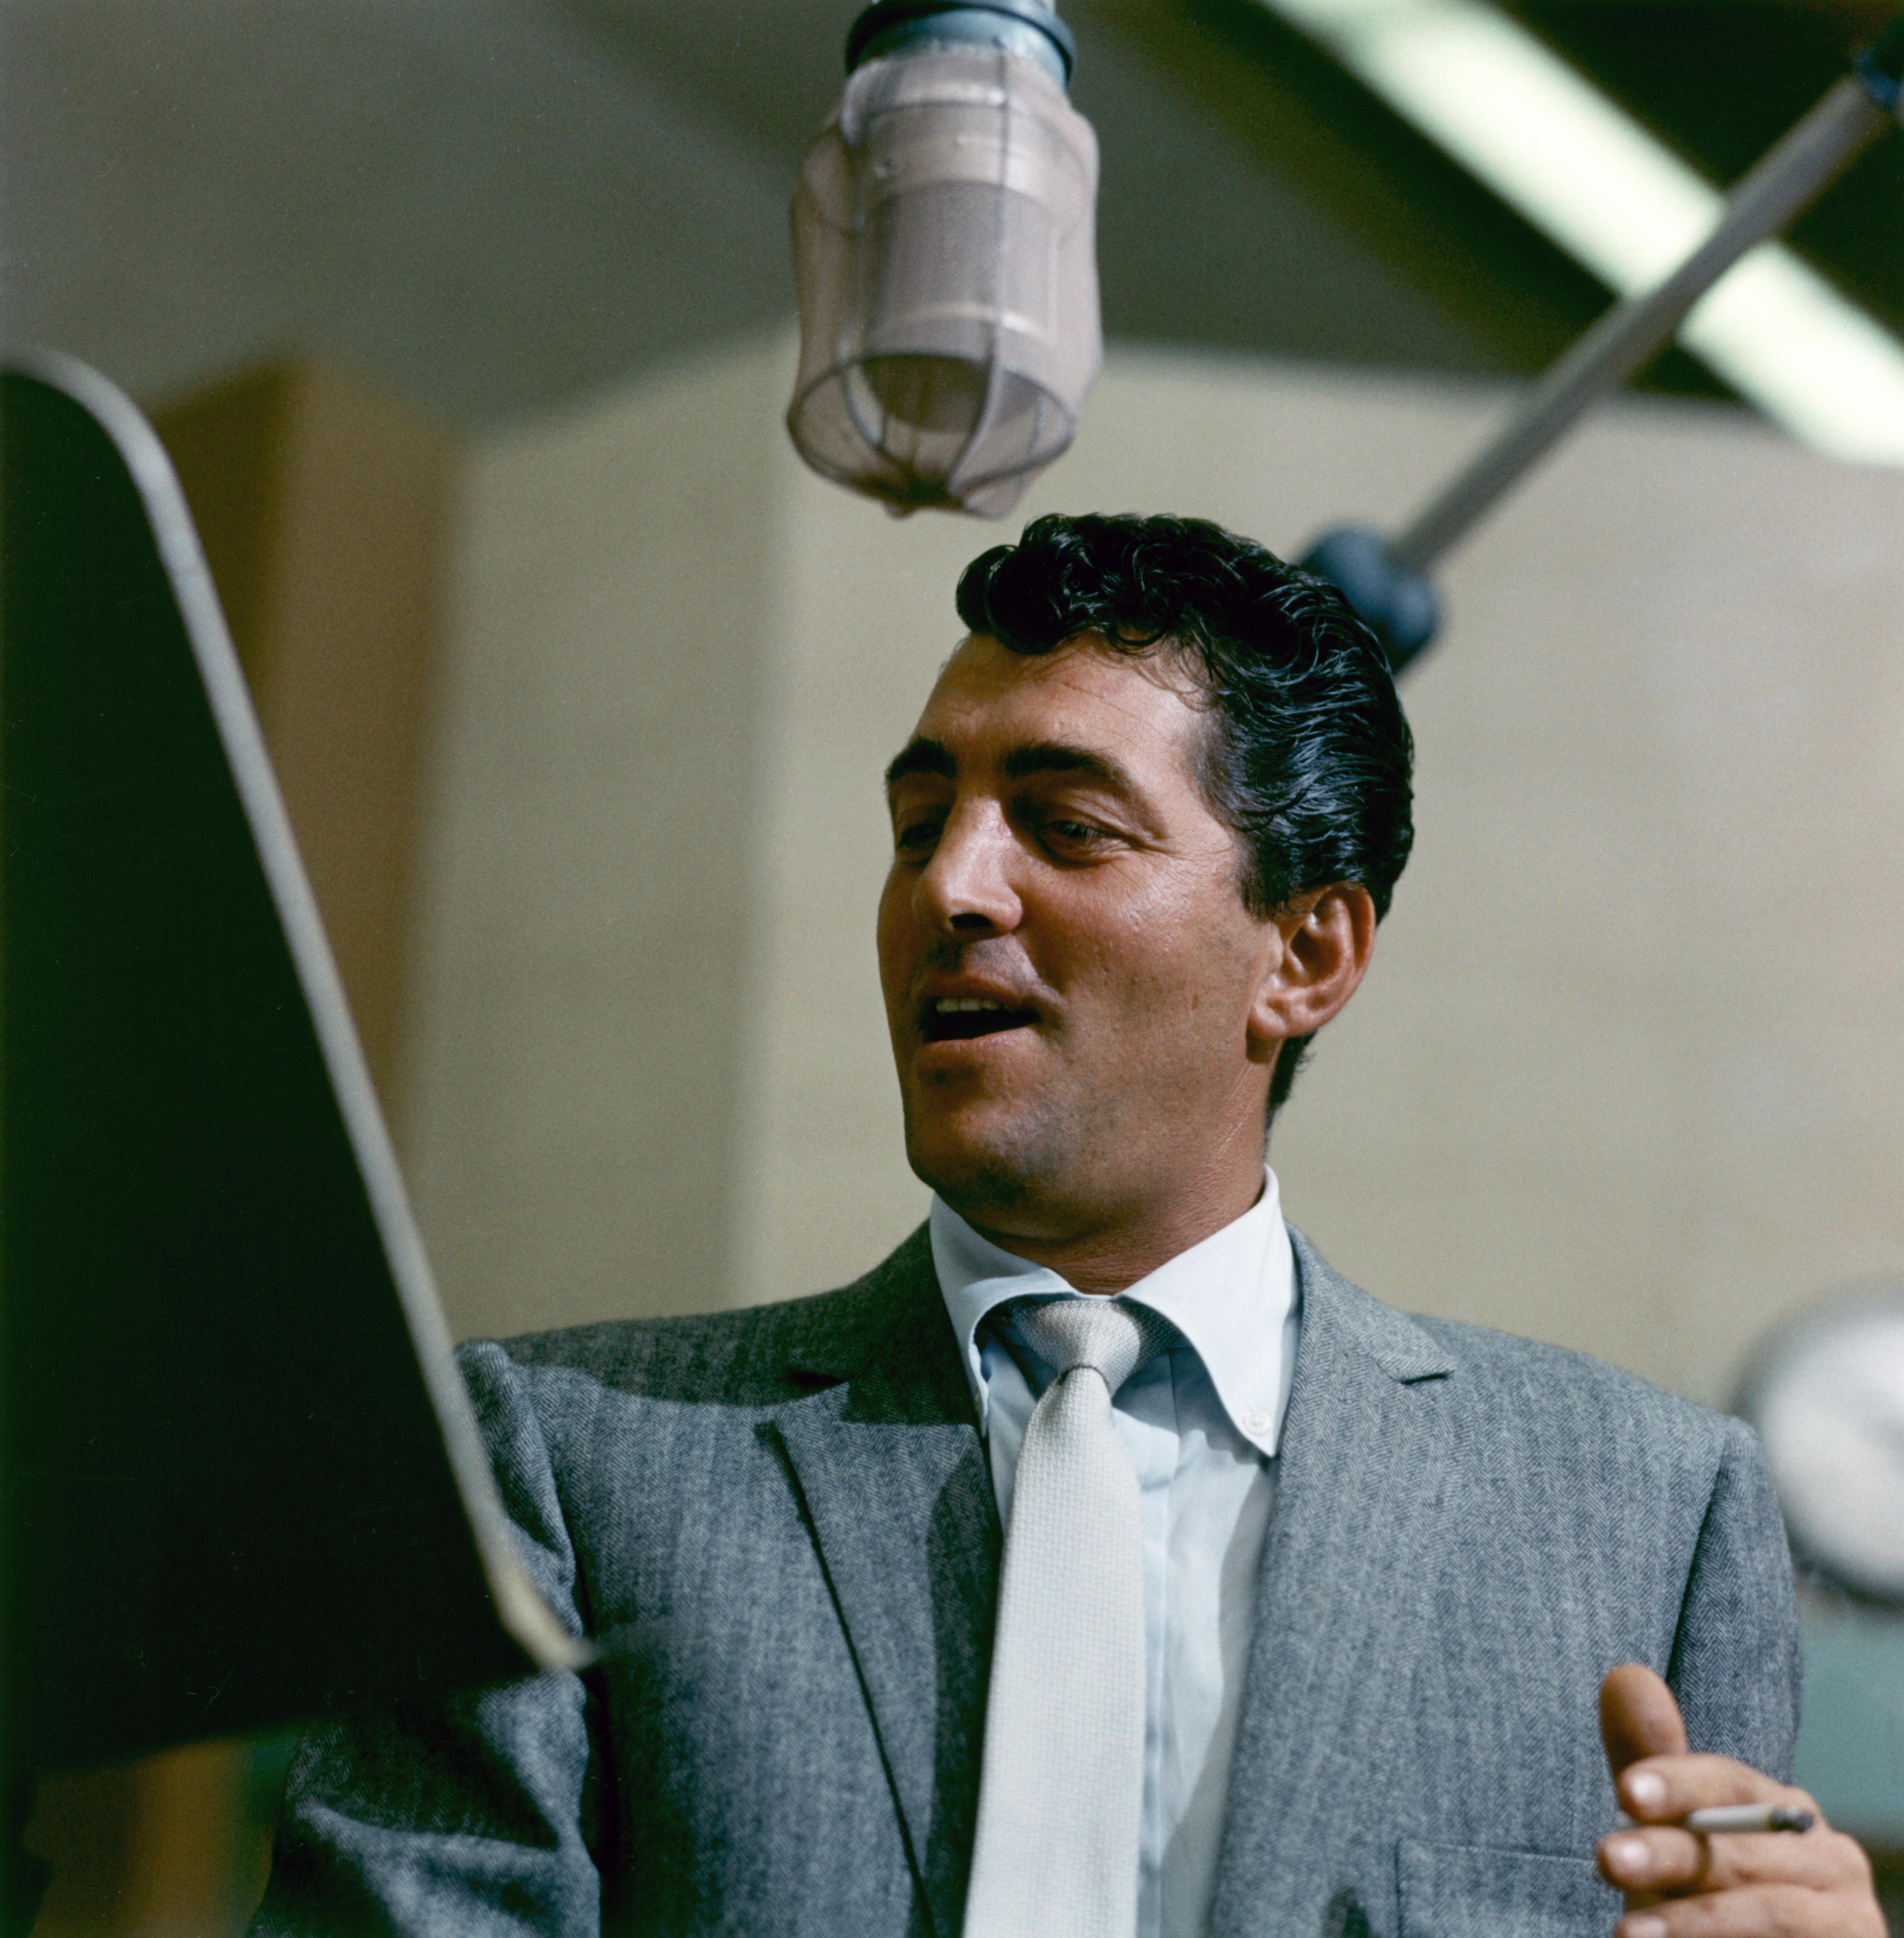 amazon forever cool dean martin イージーリスニング 音楽